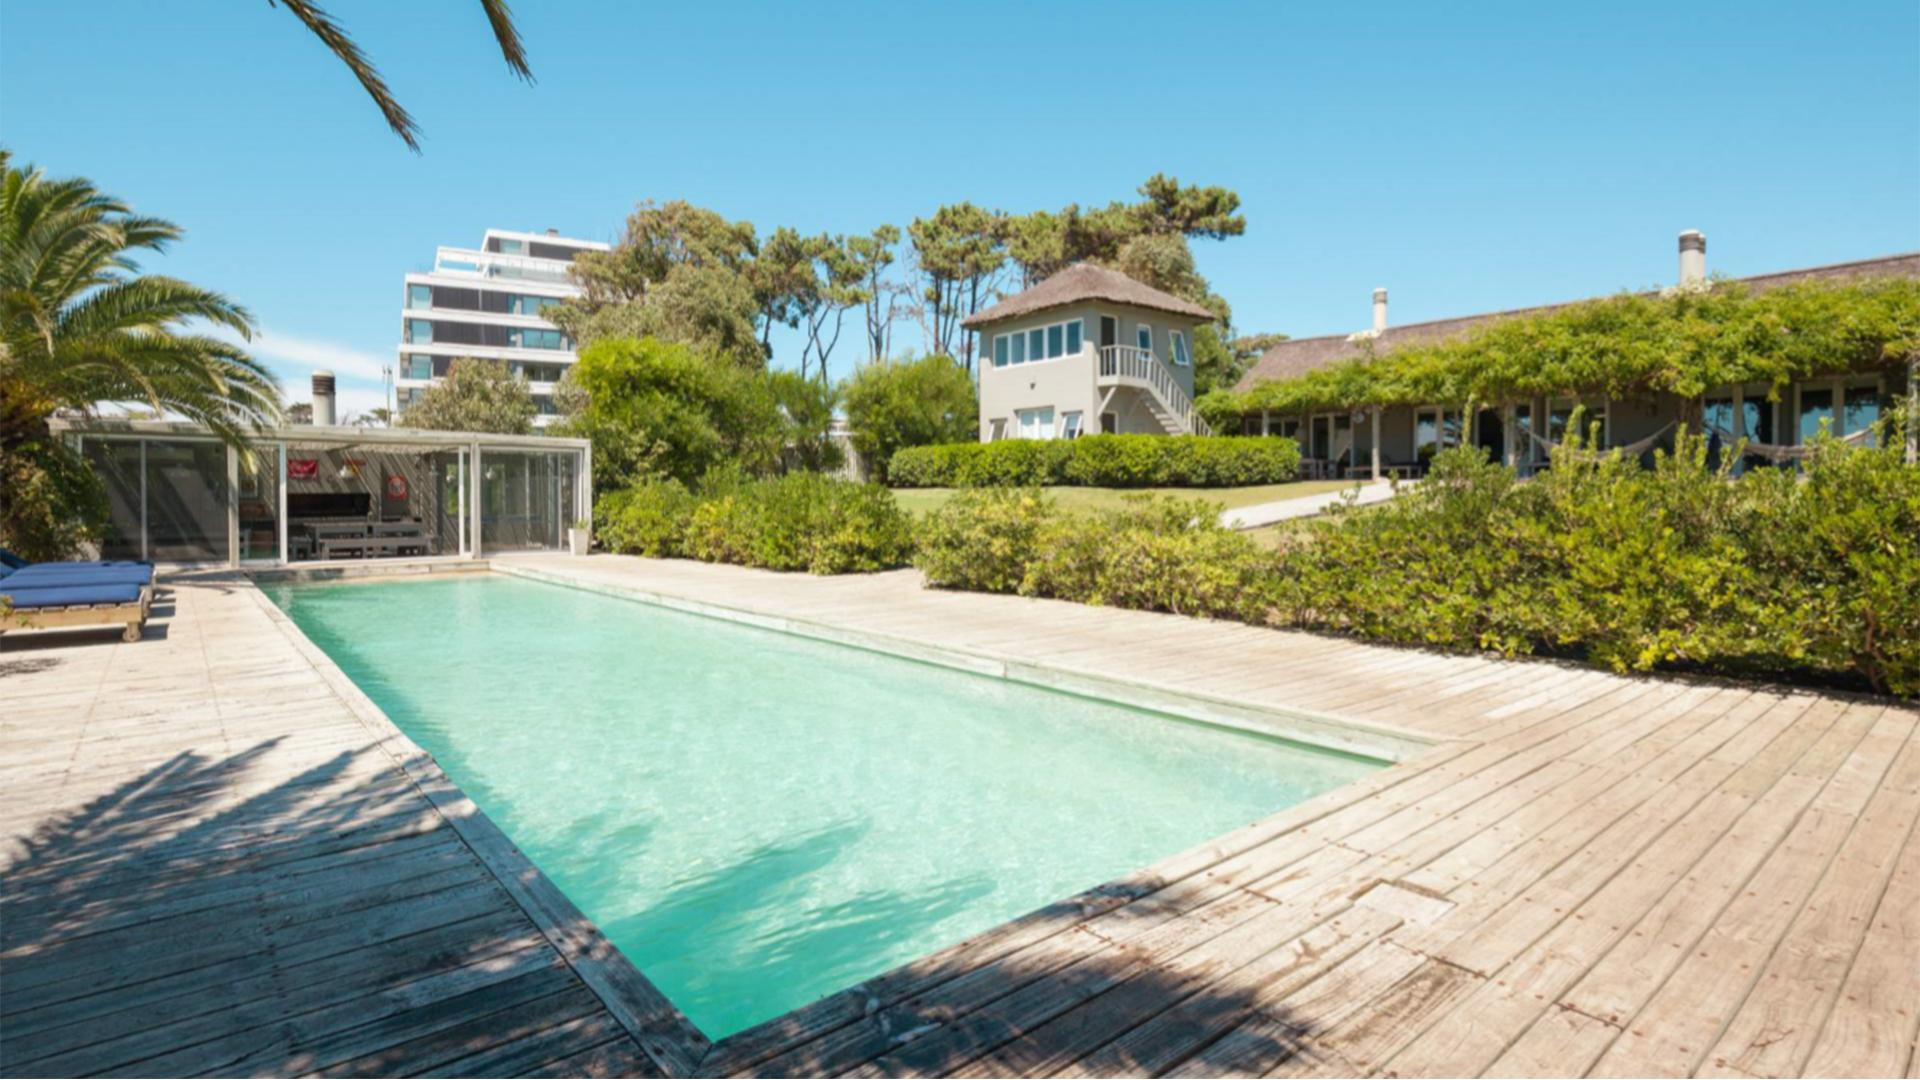 Outstanding Ocean View Villa located in Punta del Este, Punta del Este, Uruguay, listed by Curiocity Villas.